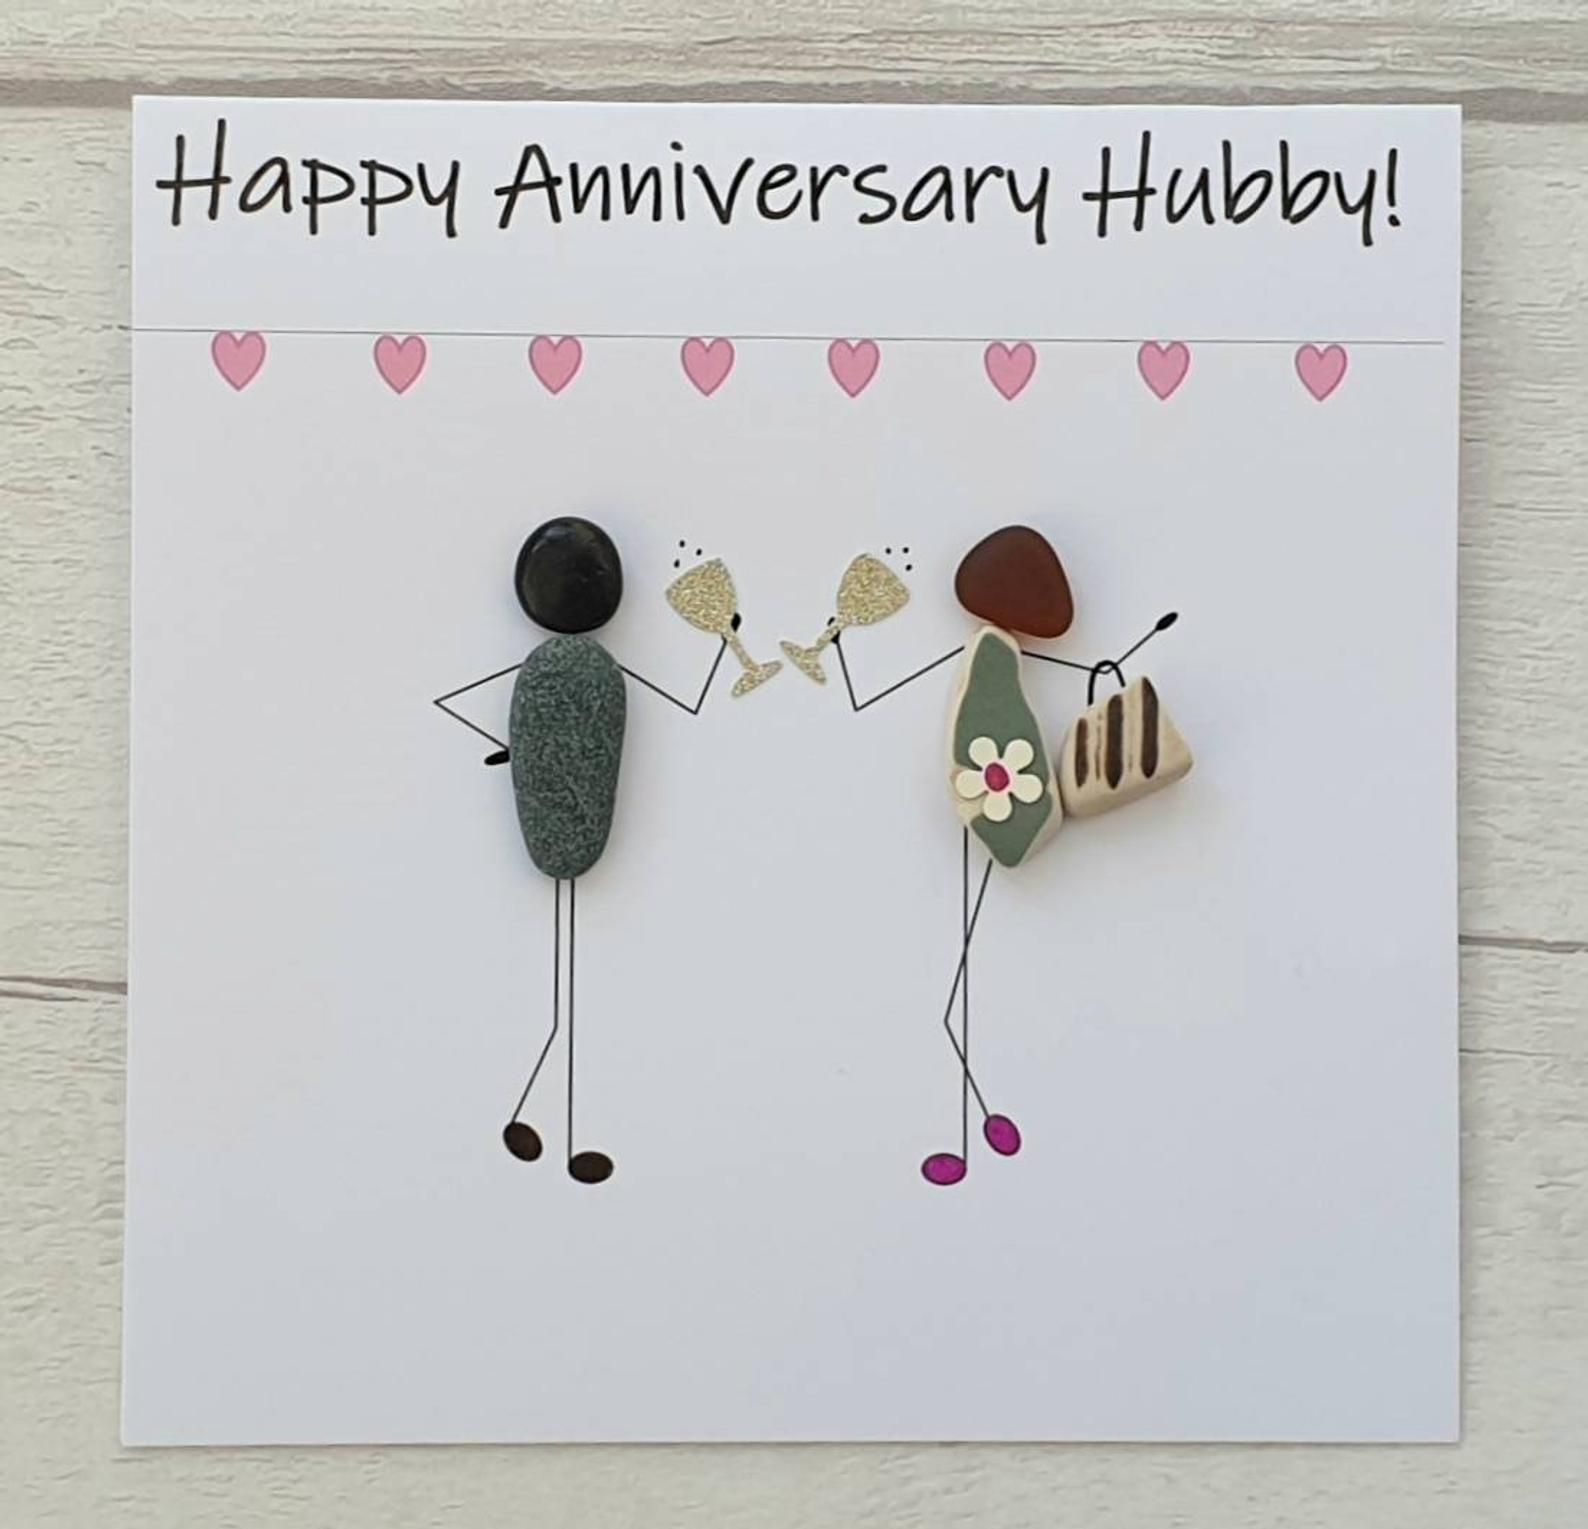 Unique Anniversary Card For Hubby Handmade Pebble Card For Etsy Anniversary Cards Handmade Cards Handmade Happy Anniversary Hubby